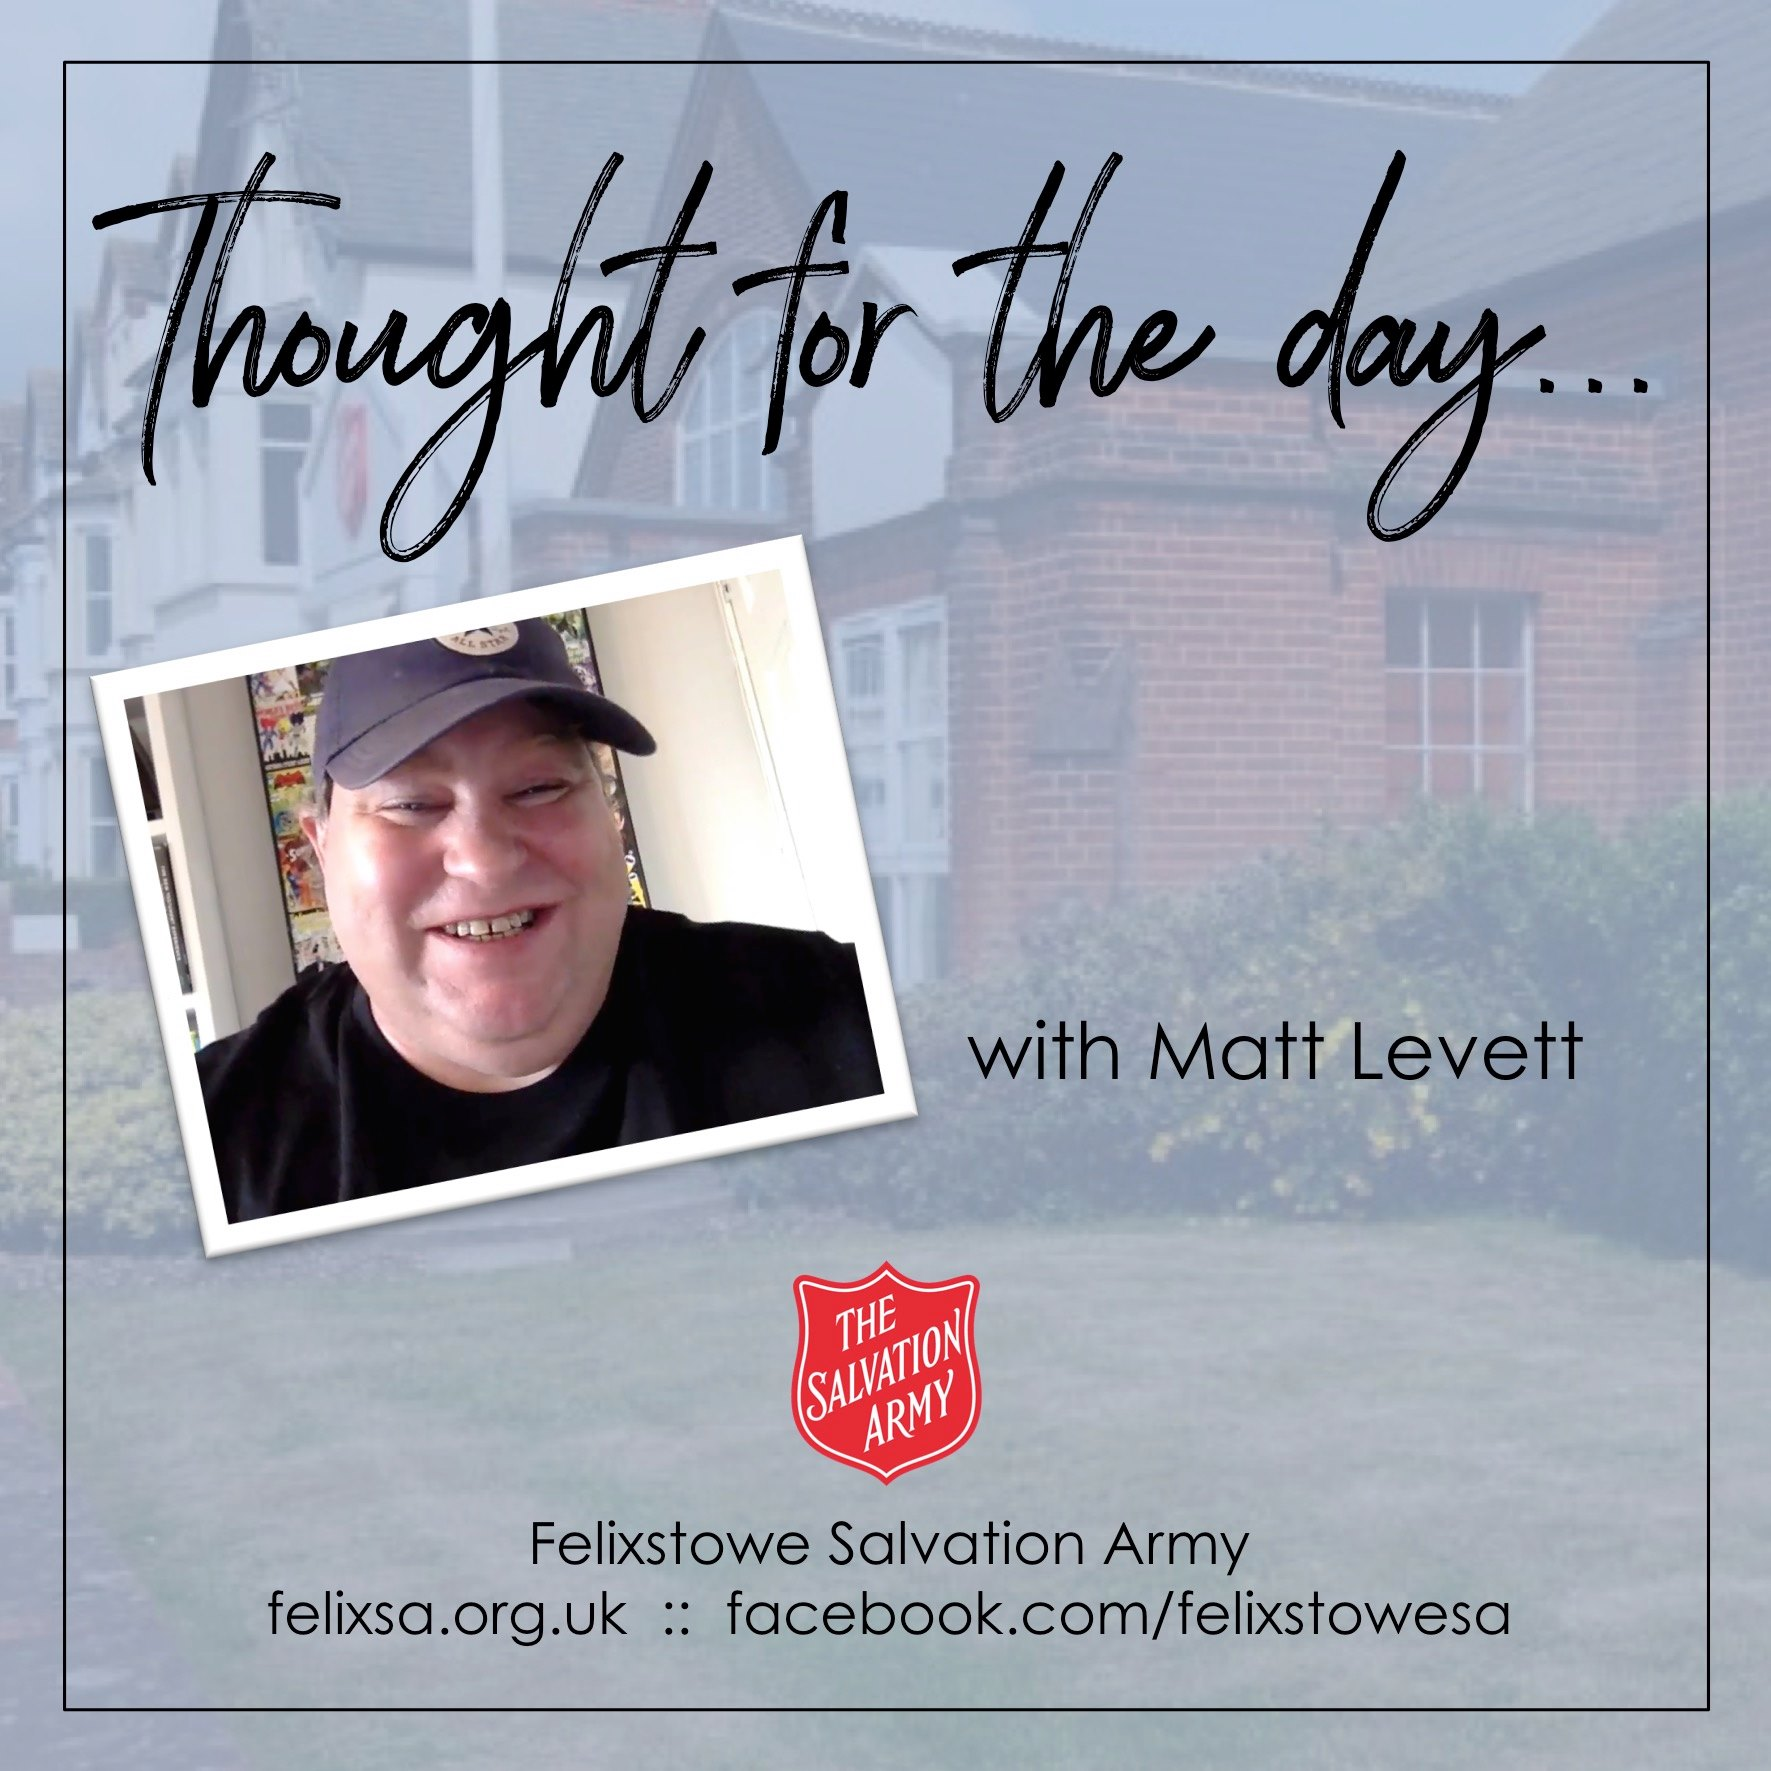 Thought for the Day with Matt Levett